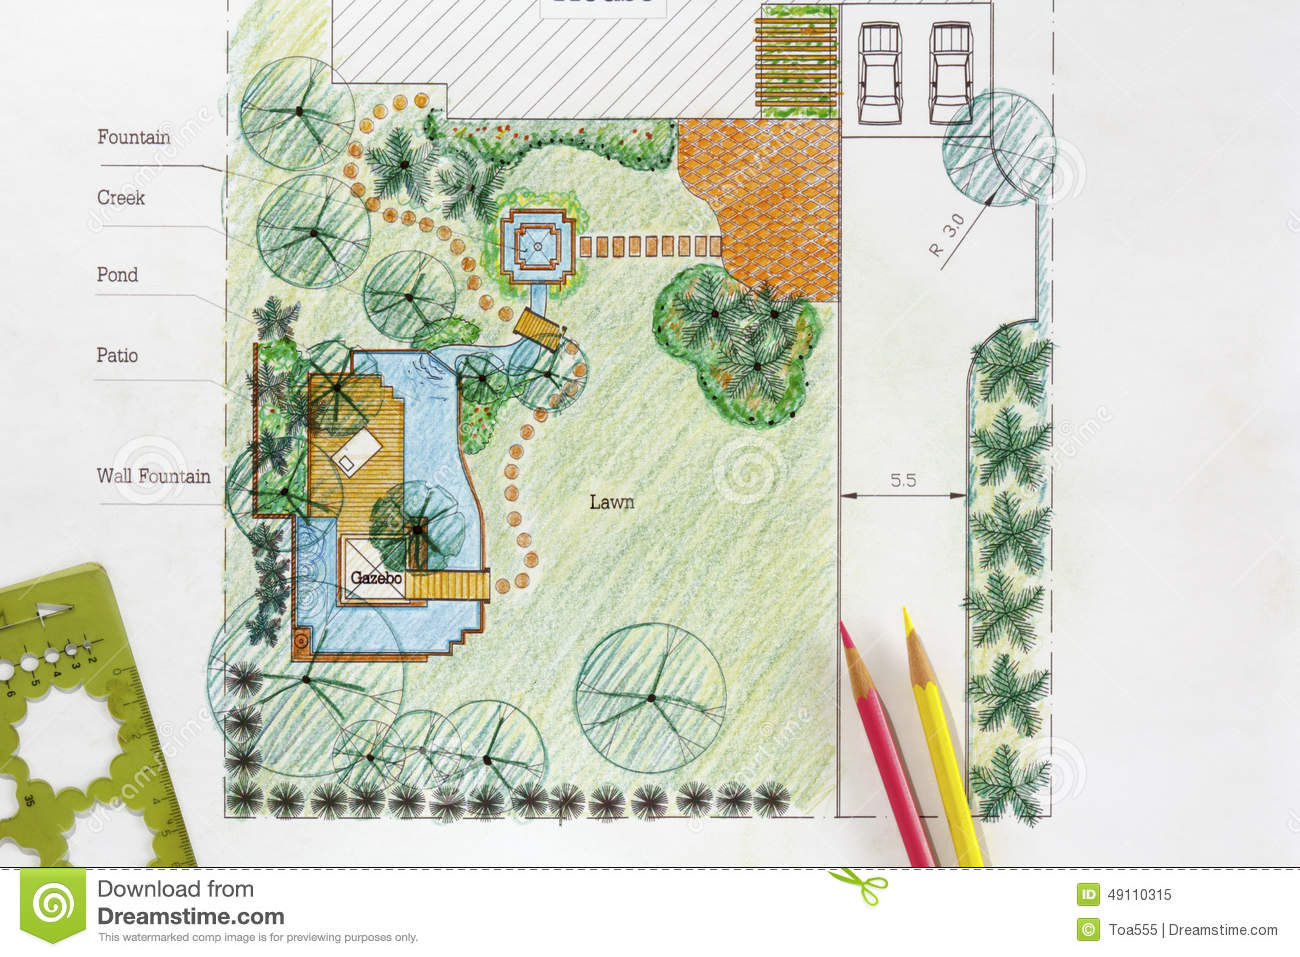 Plans de jardin de l 39 eau de conception d 39 architecte paysagiste photo stock image 49110315 for Amenager son jardin paysagiste